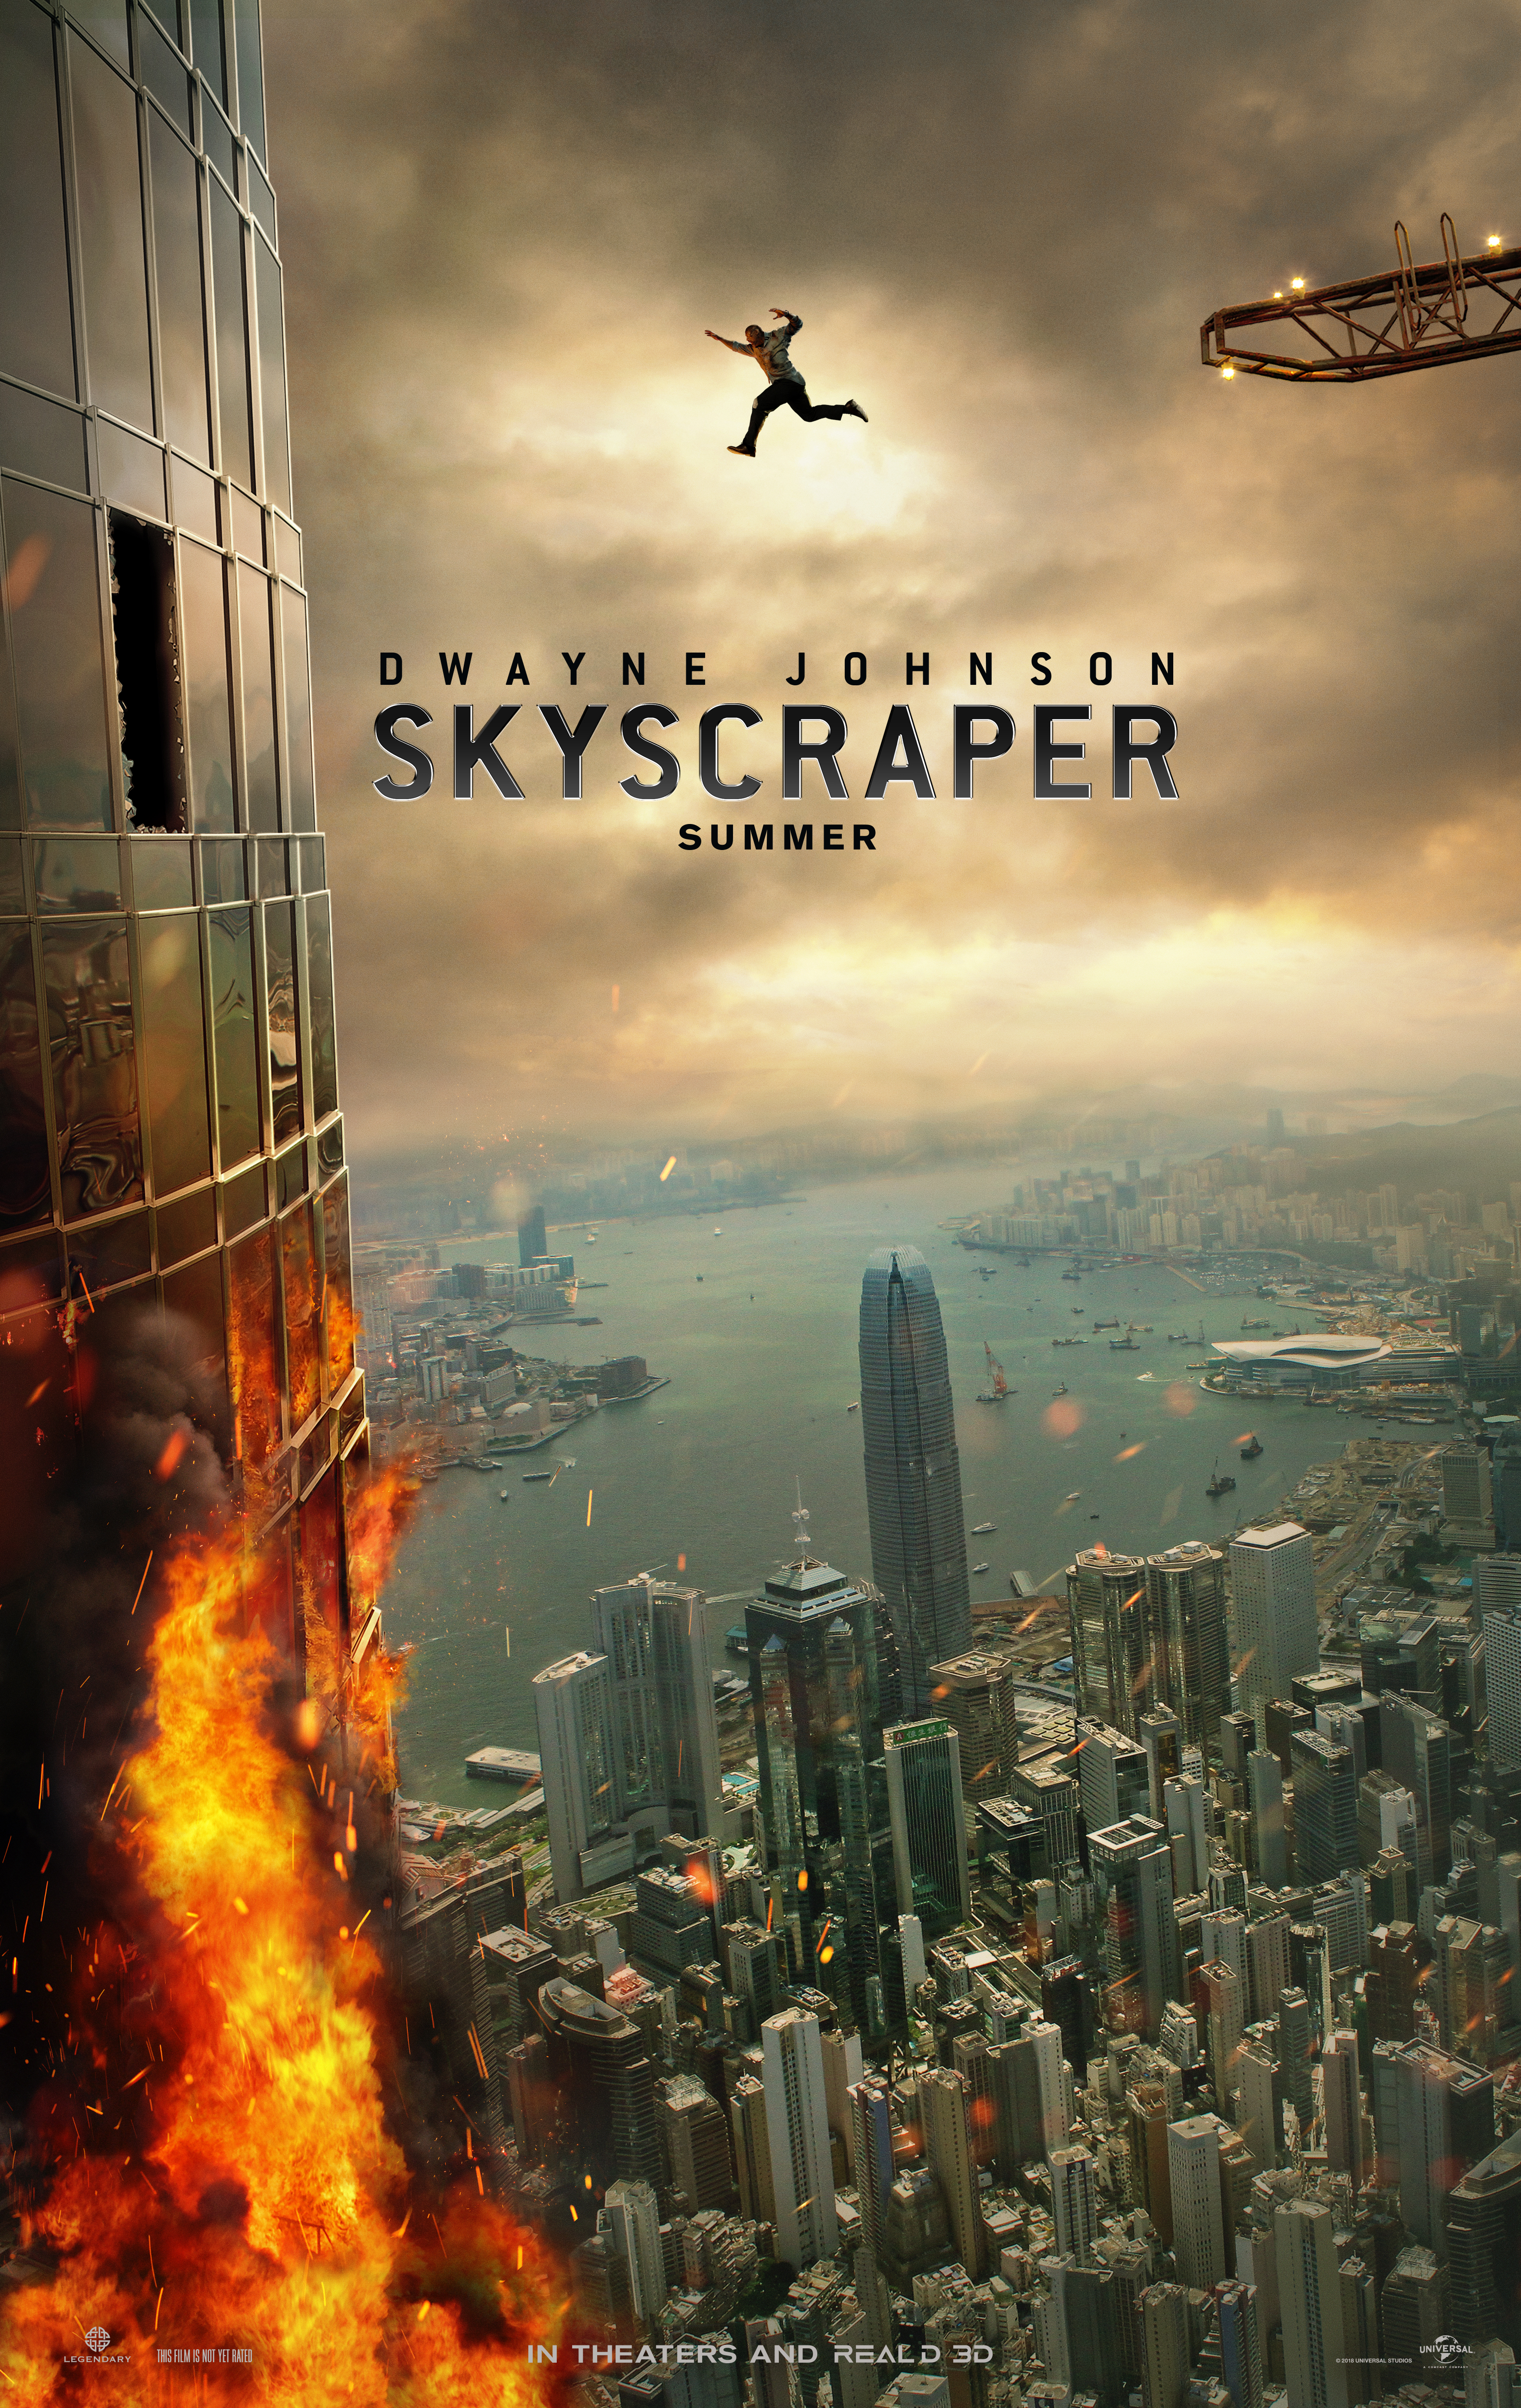 This Skyscraper Poster Is Glorious And Utterly Ridiculous